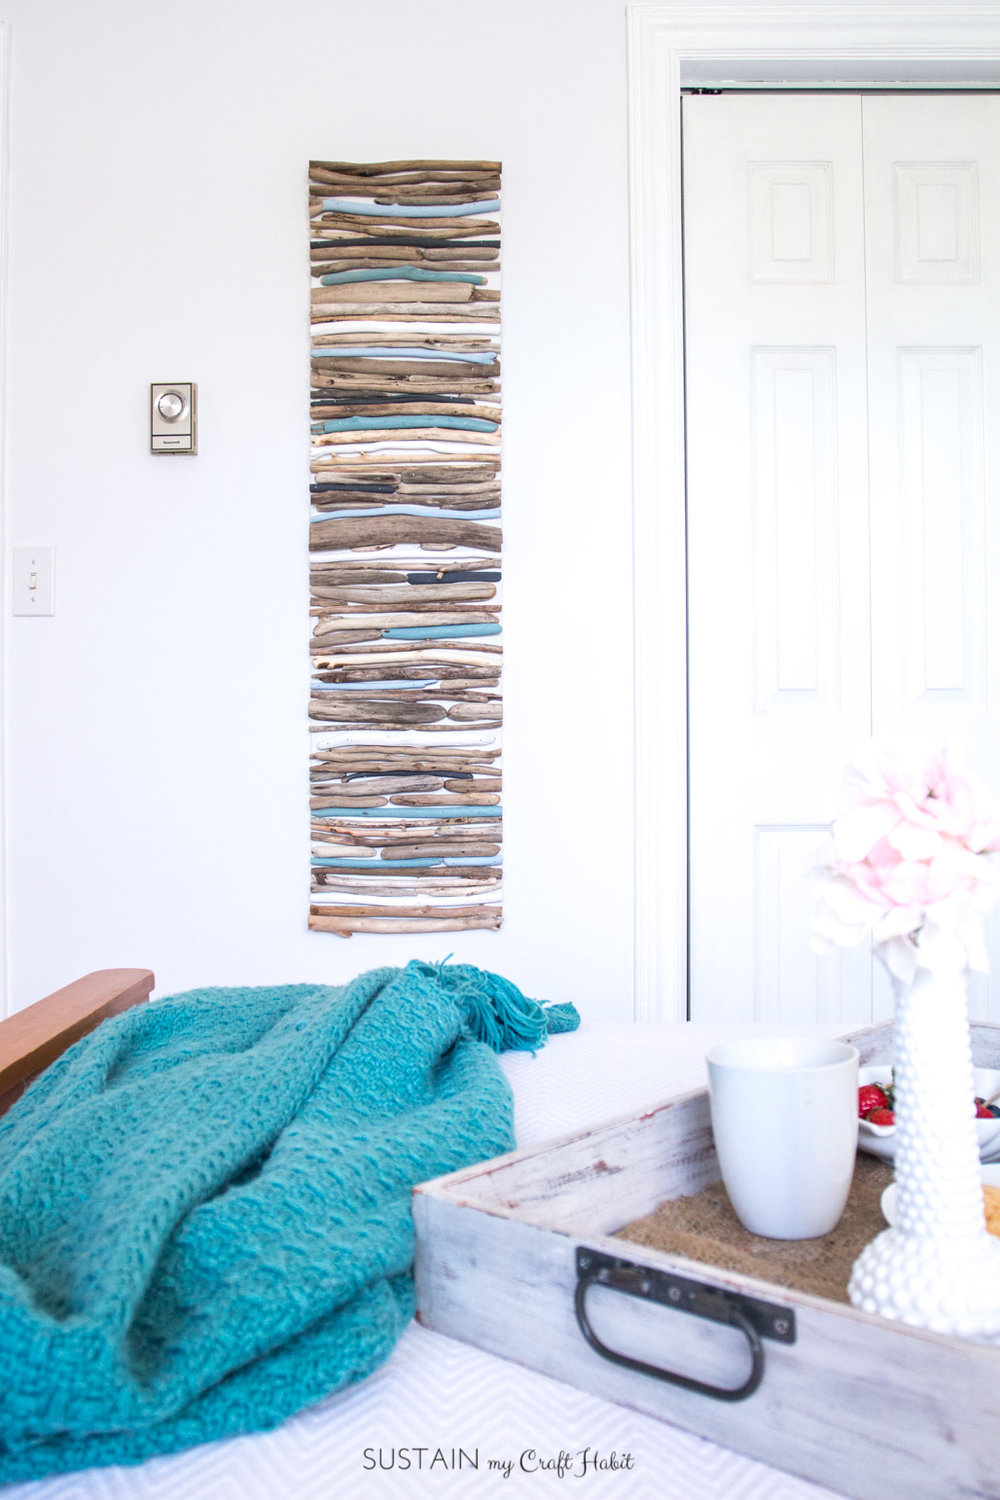 DIY Coastal Decor - Painted Driftwood Wall Art | Driftwood craft project | Lake house or cottage decorating idea | Cheap driftwood decor